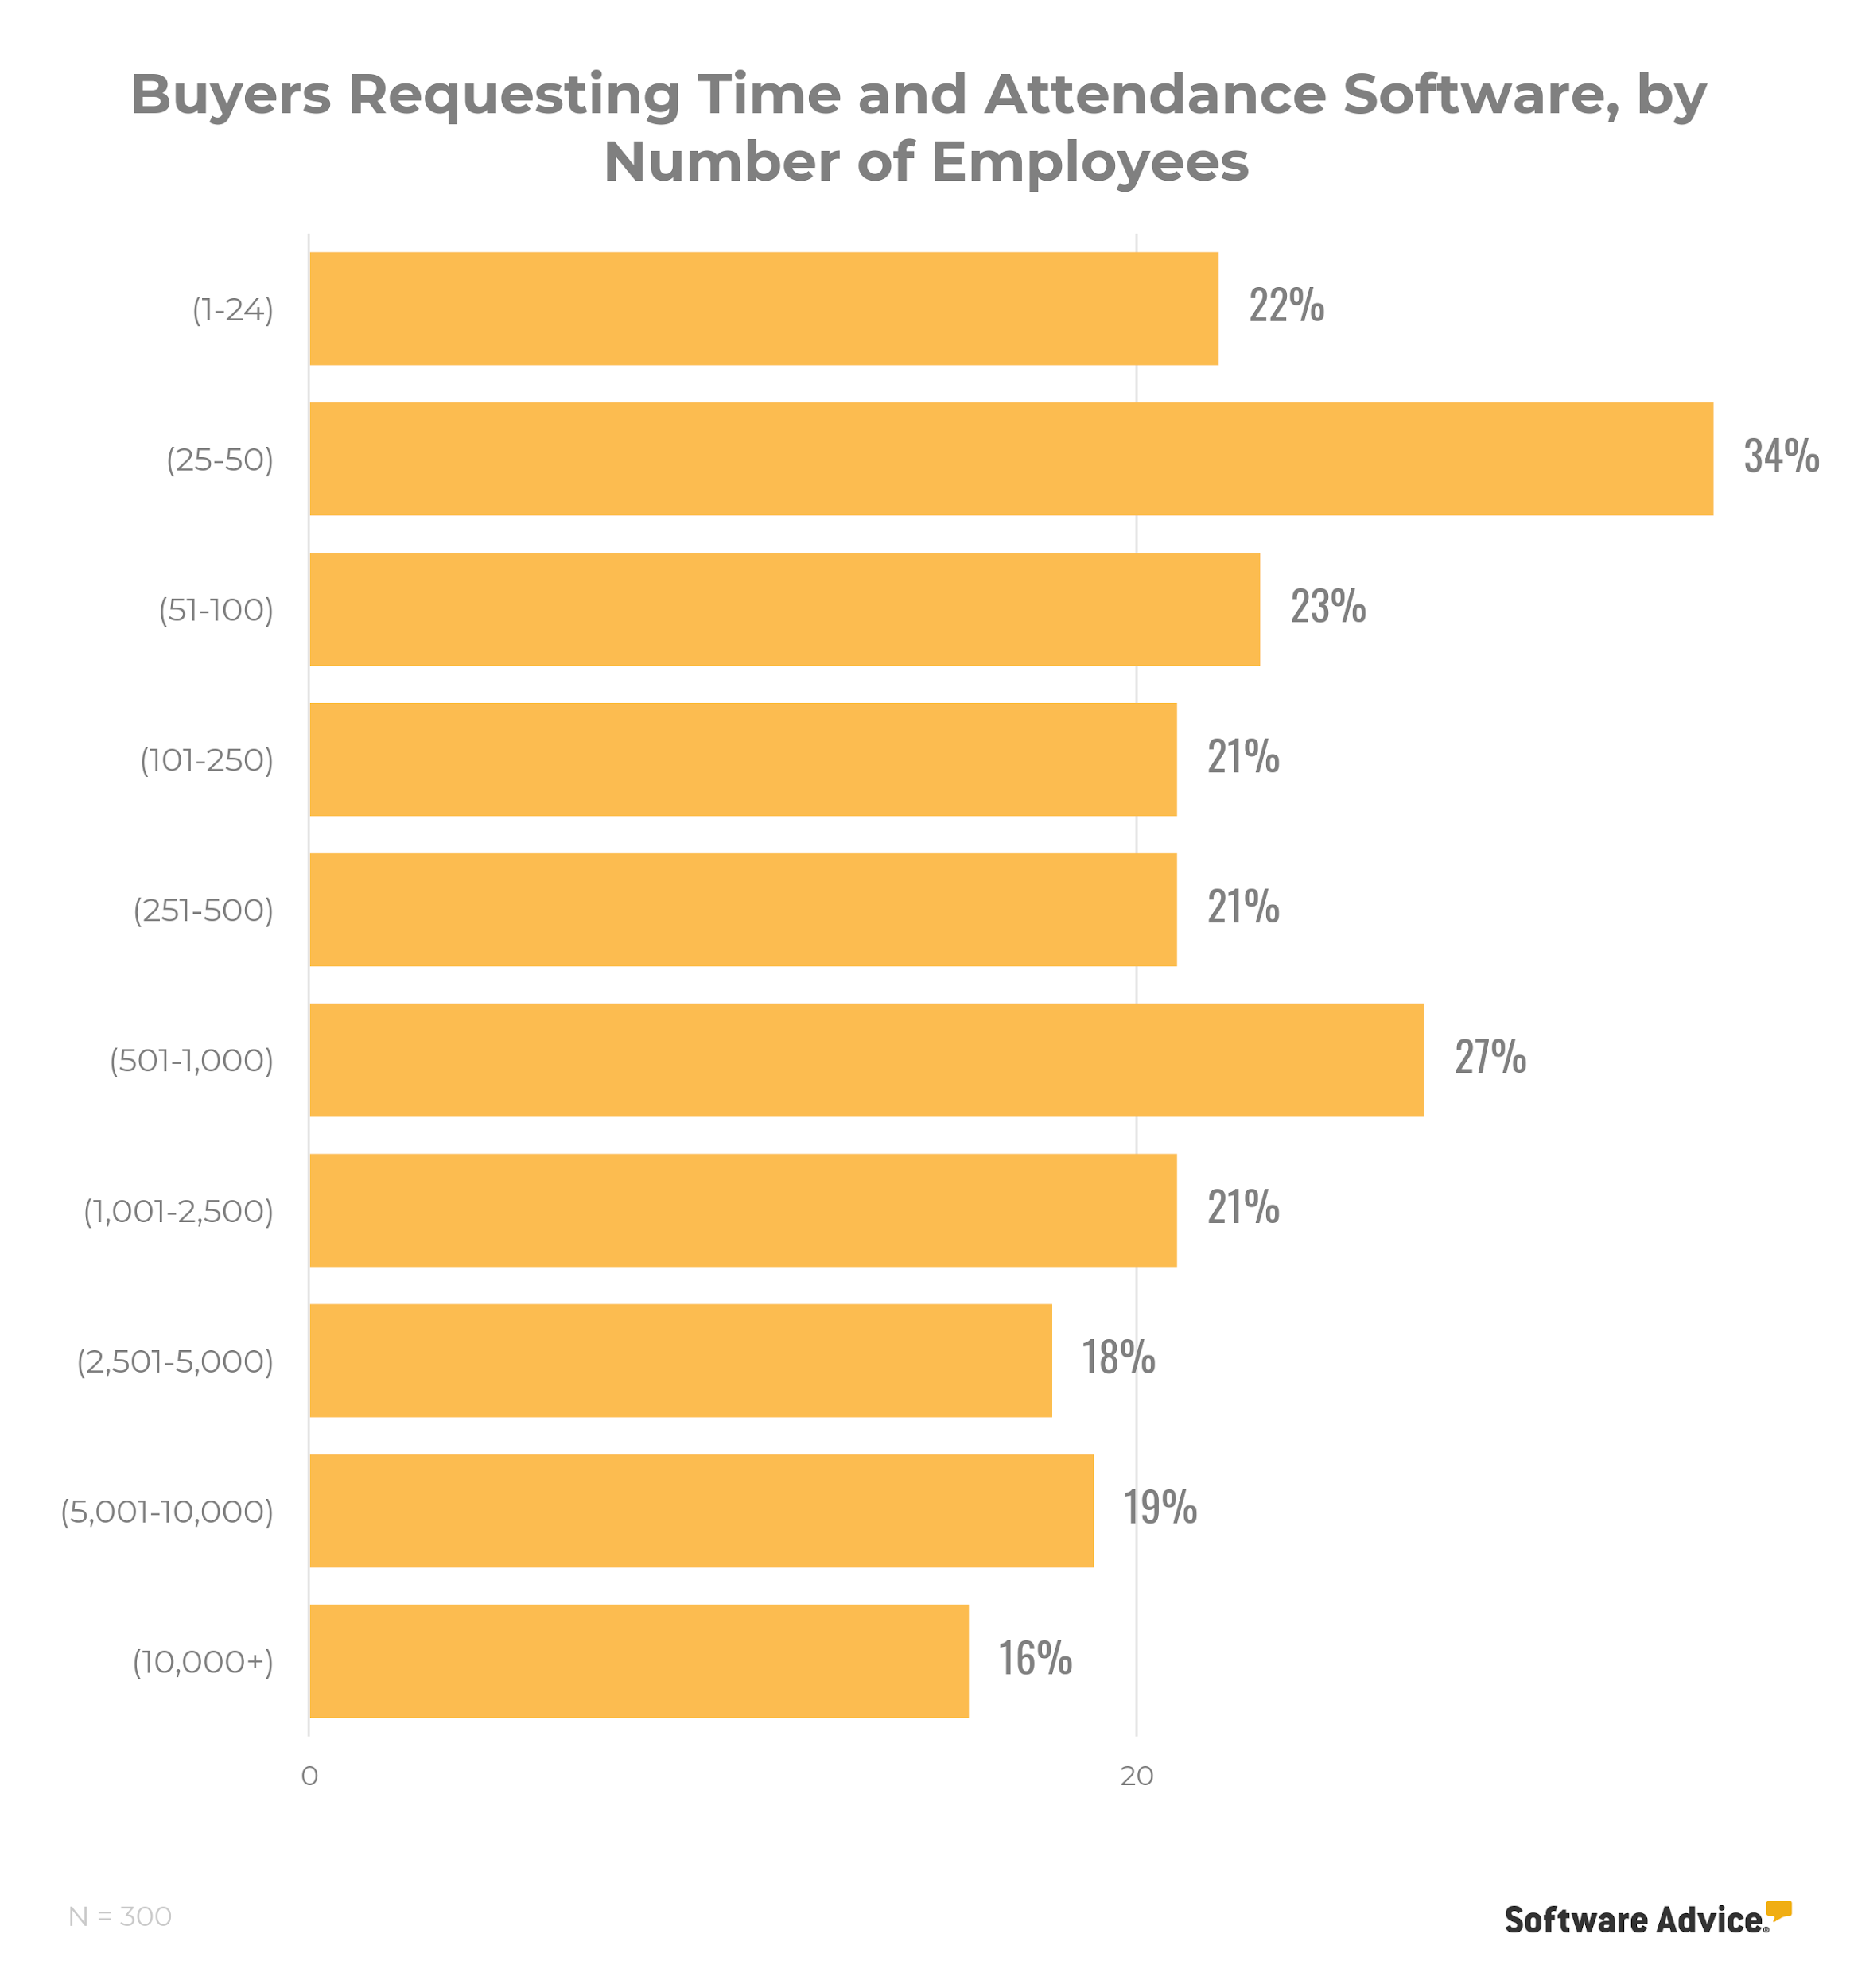 chart showing that interest in time and attendance software is highest in businesses with 25-50 employees